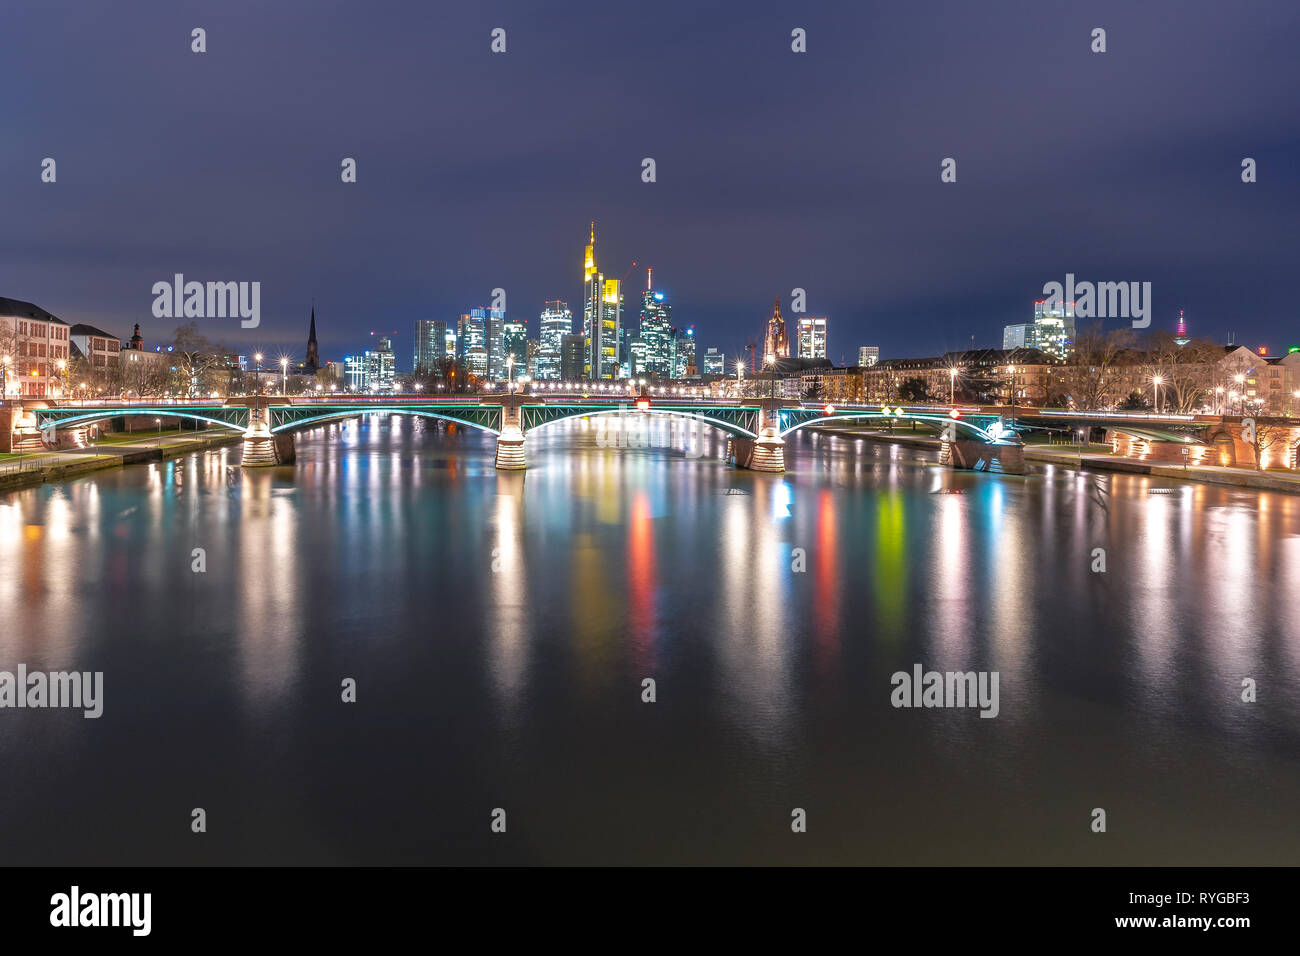 Night view of skyline of Frankfurt financial district in Germany - Stock Image